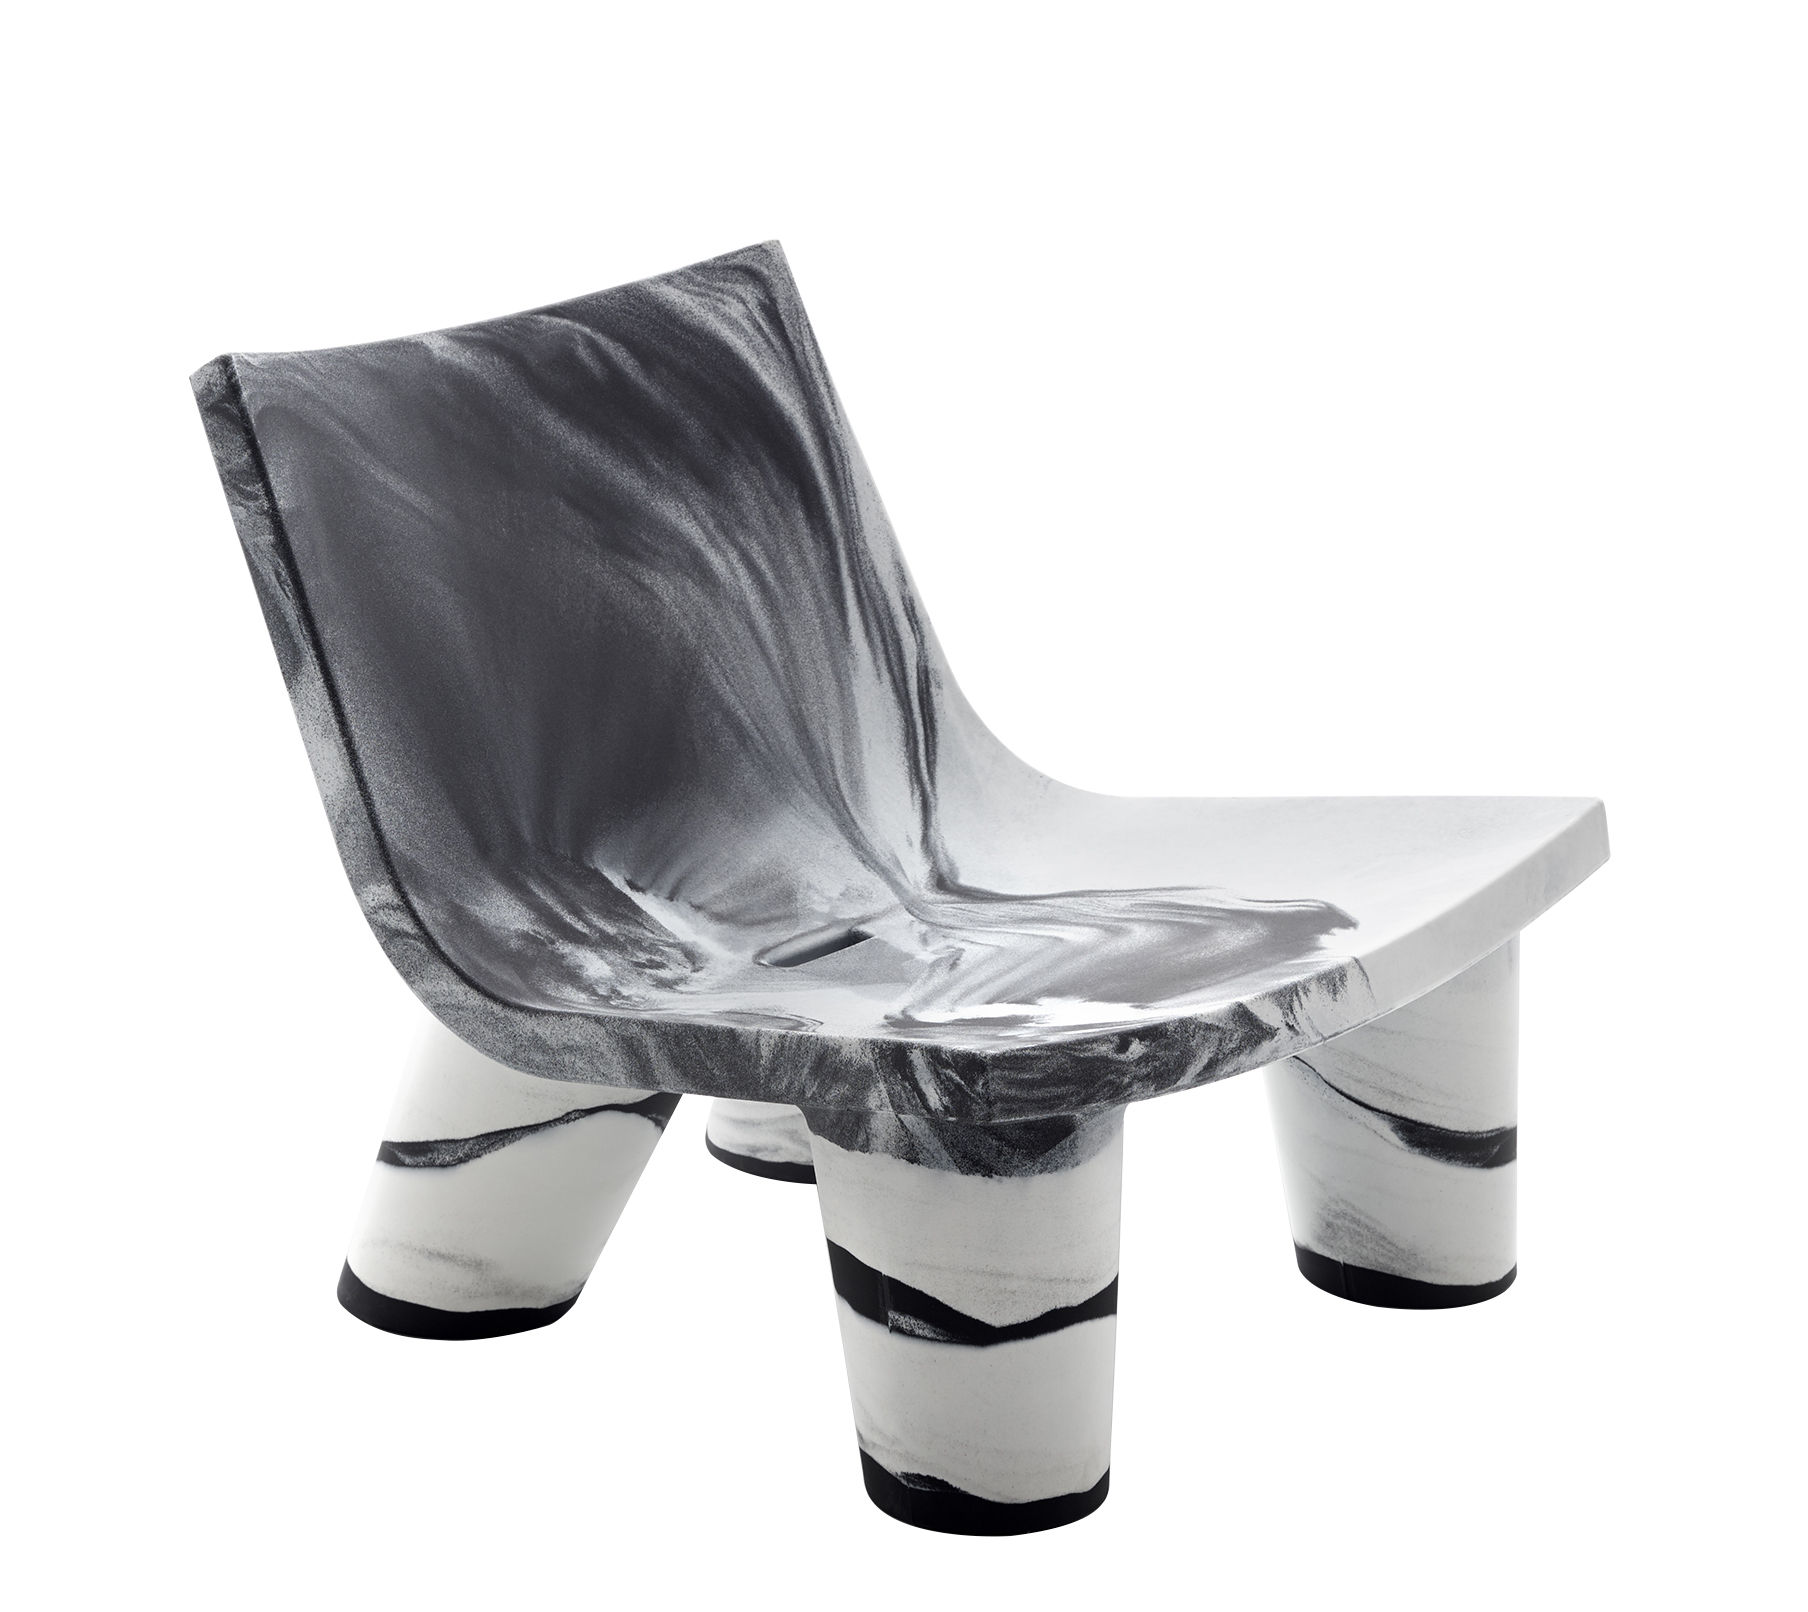 Furniture - Armchairs - Low Lita Low armchair - / 10-year limited edition by Slide - Black & white - recyclable polyethylene